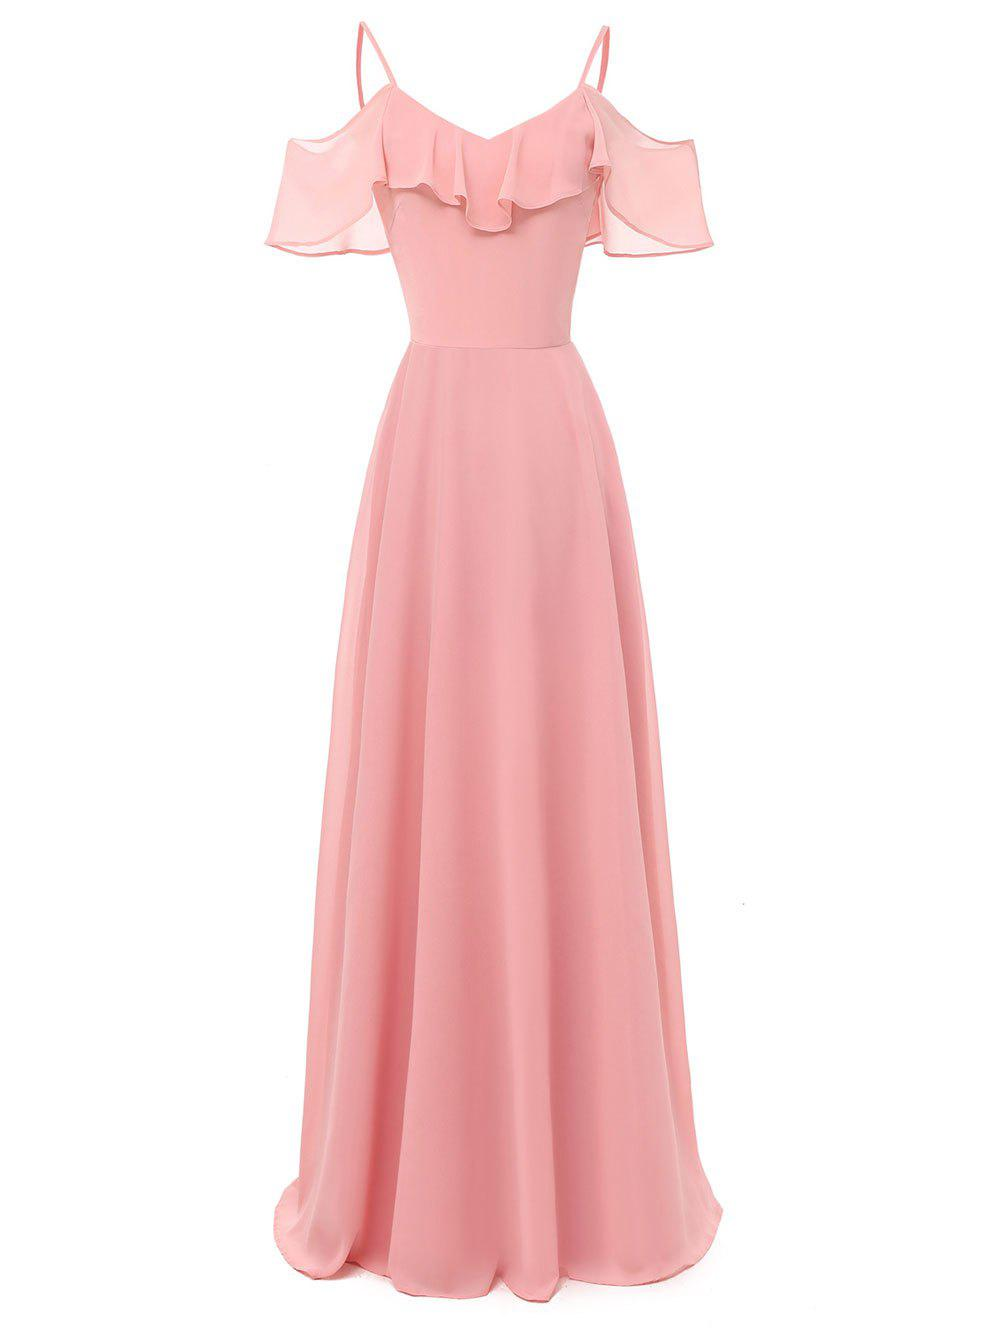 New Ruffle Overlay Cold Shoulder Evening Dress